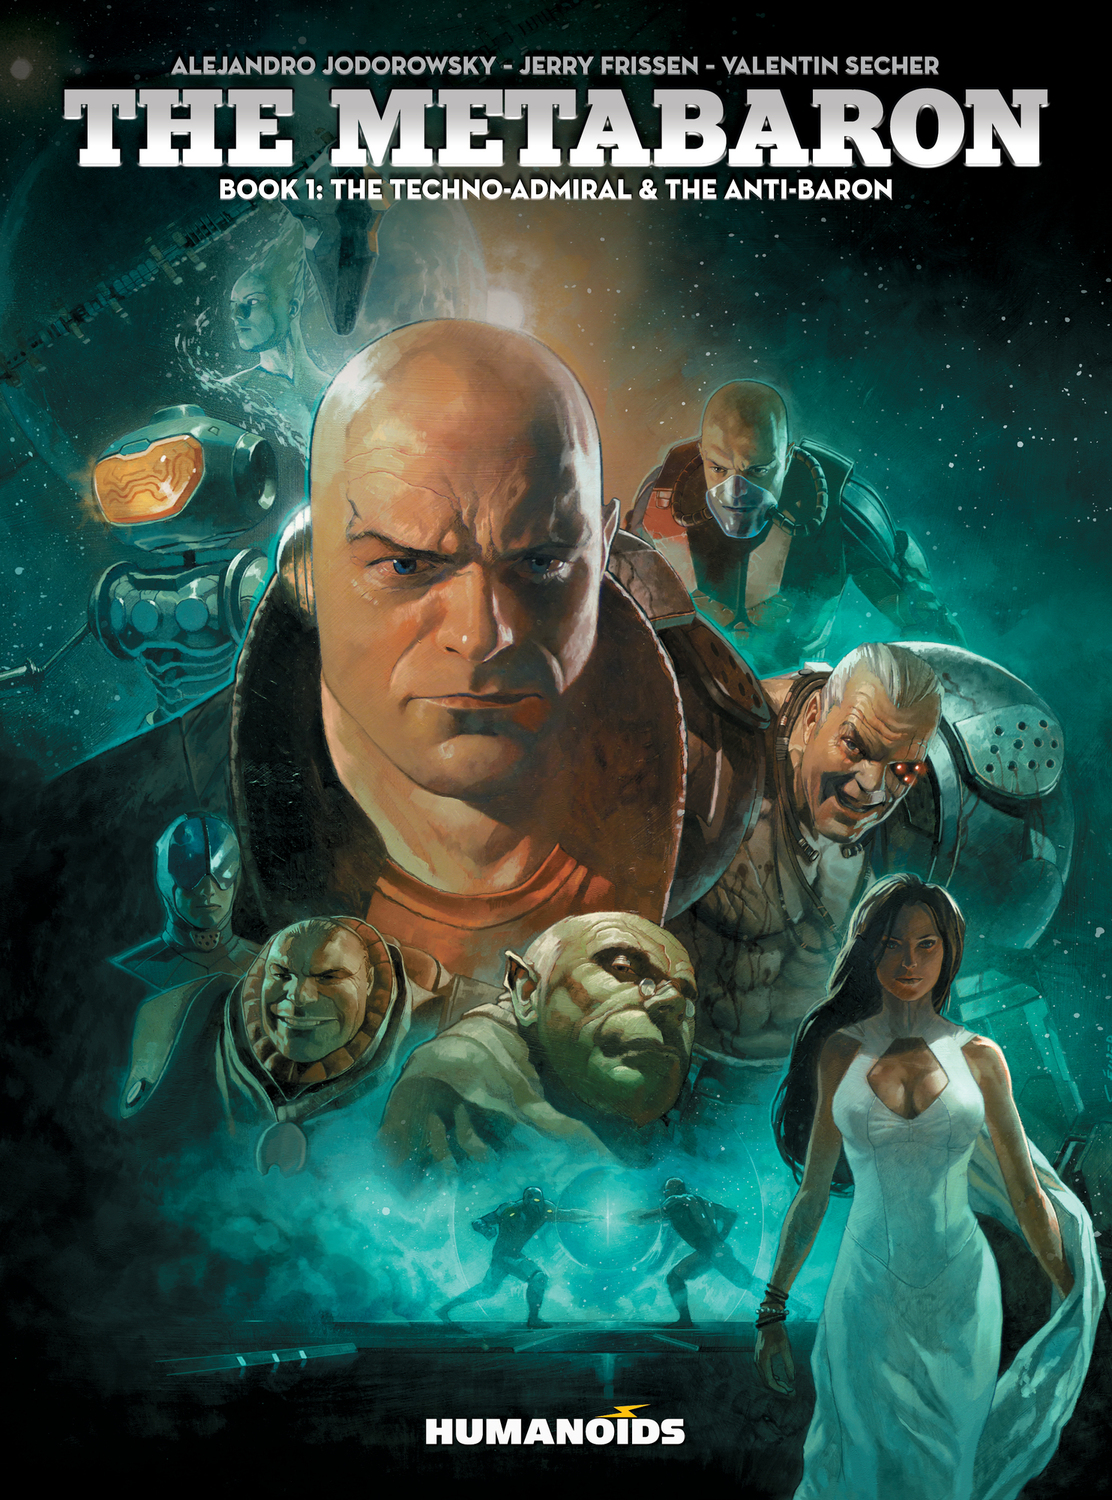 The Metabaron #1 : The Techno-Admiral & The Anti-Baron - Softcover Trade